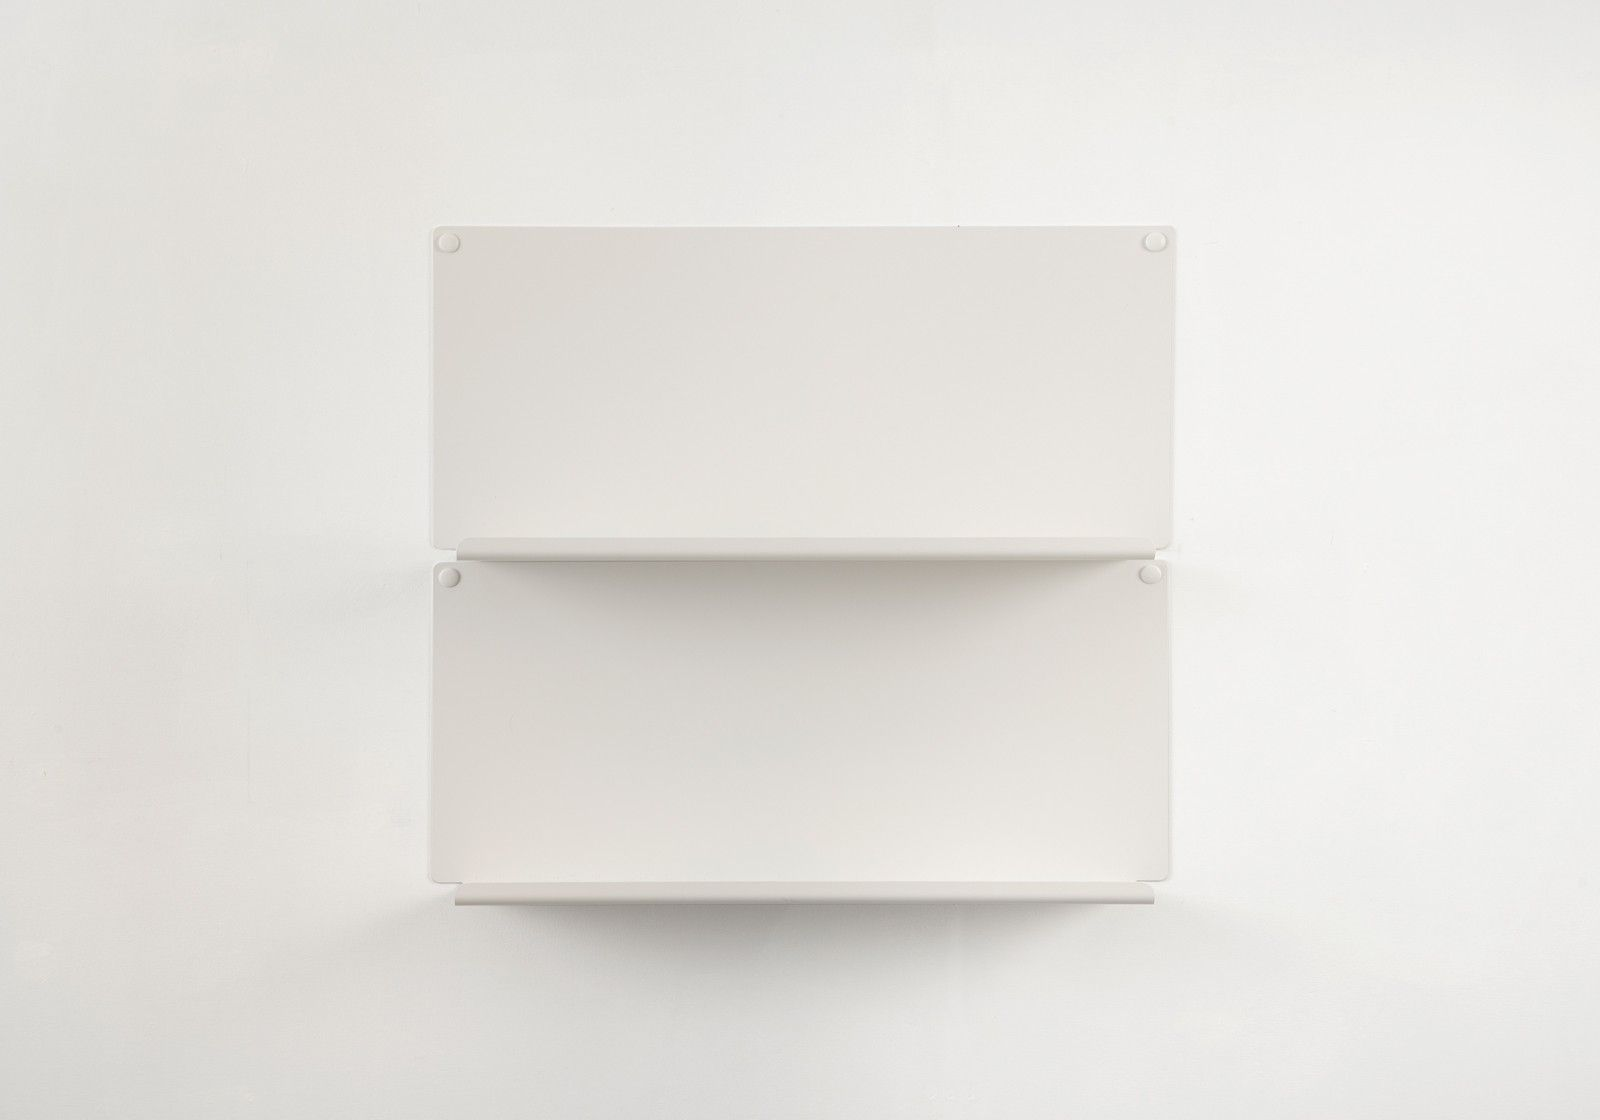 Bathroom wall shelves  LE    Set of. Bathroom wall shelves  LE    Set of 2